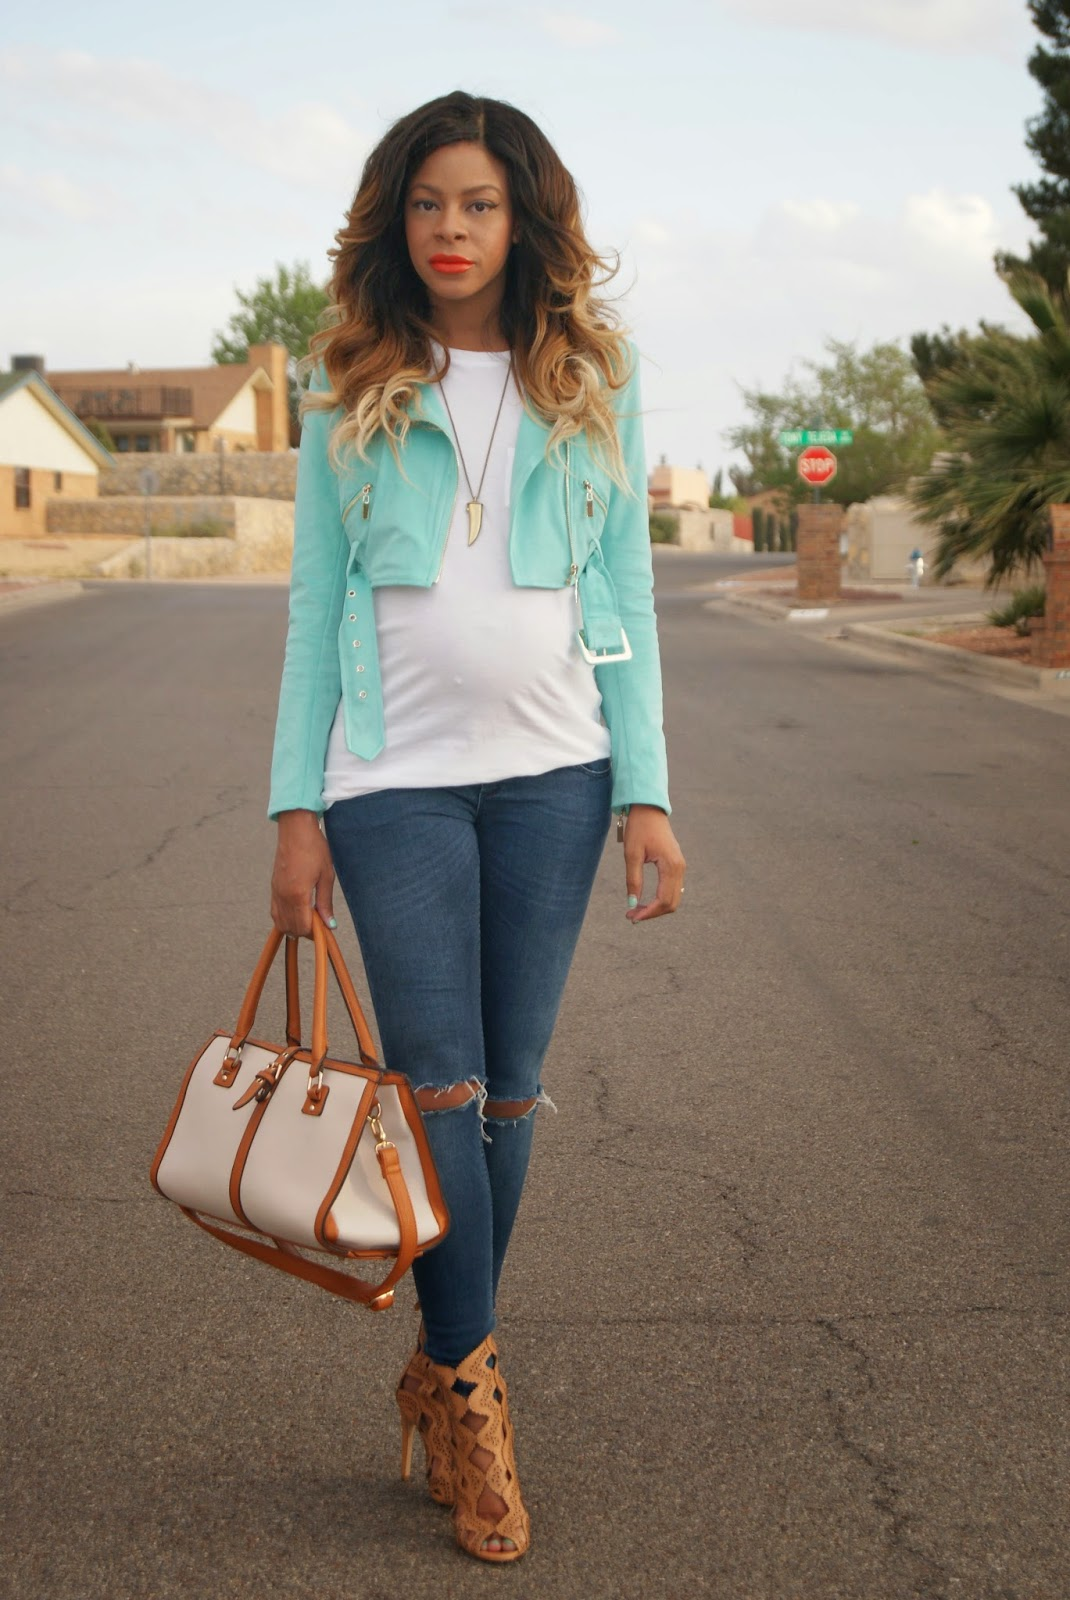 maternity style, bebe jacket, suede jacket, tiffany blue, ombre hair, orange lips, allthingsslim